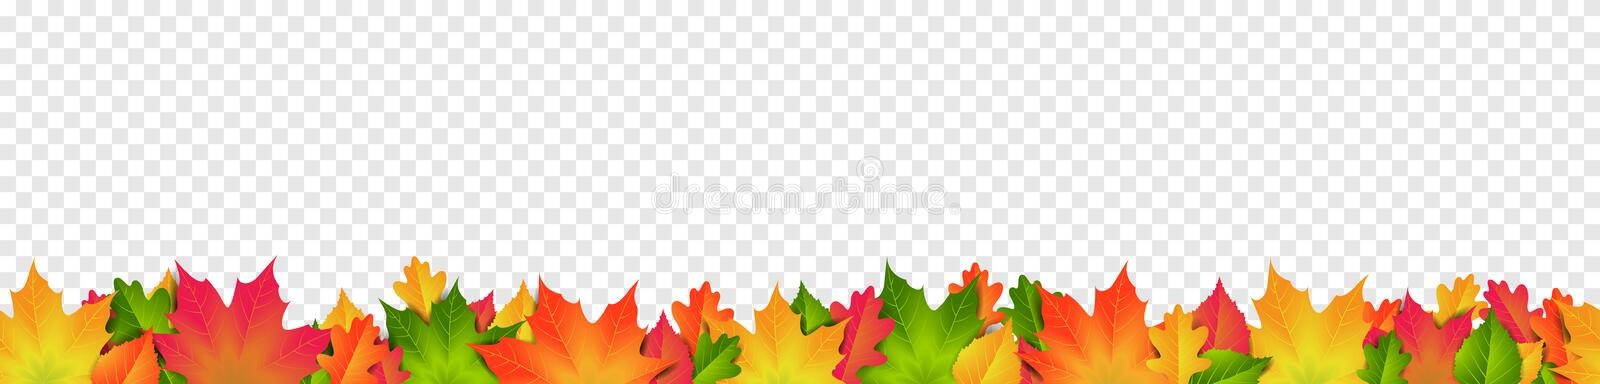 Colorful autumn leaves seamless pattern banner isolated transparent background vector. Design royalty free illustration